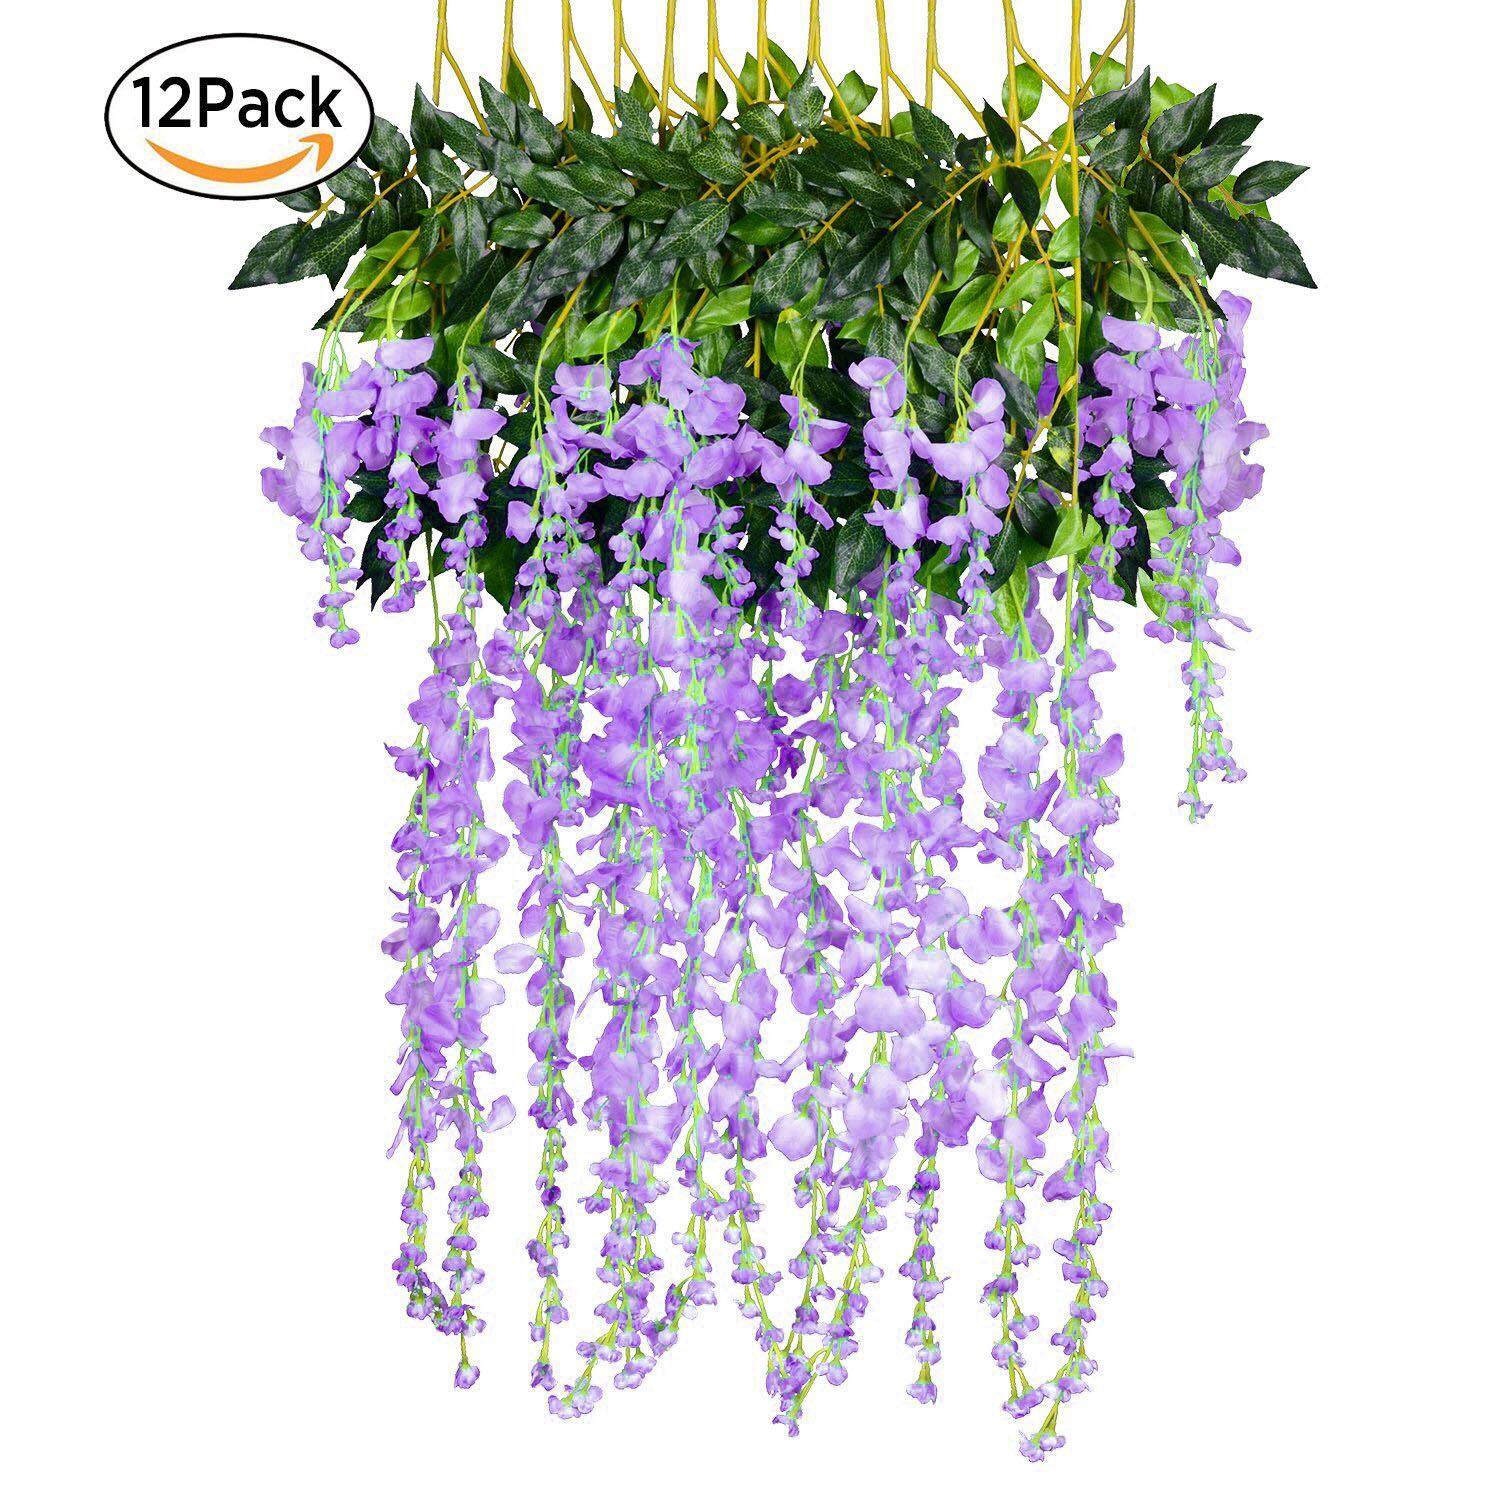 12Pack/Set Wedding Decor Artificial Silk Wisteria Flower Vines hanging Rattan Bride flowers Garland For Home Garden Hotel